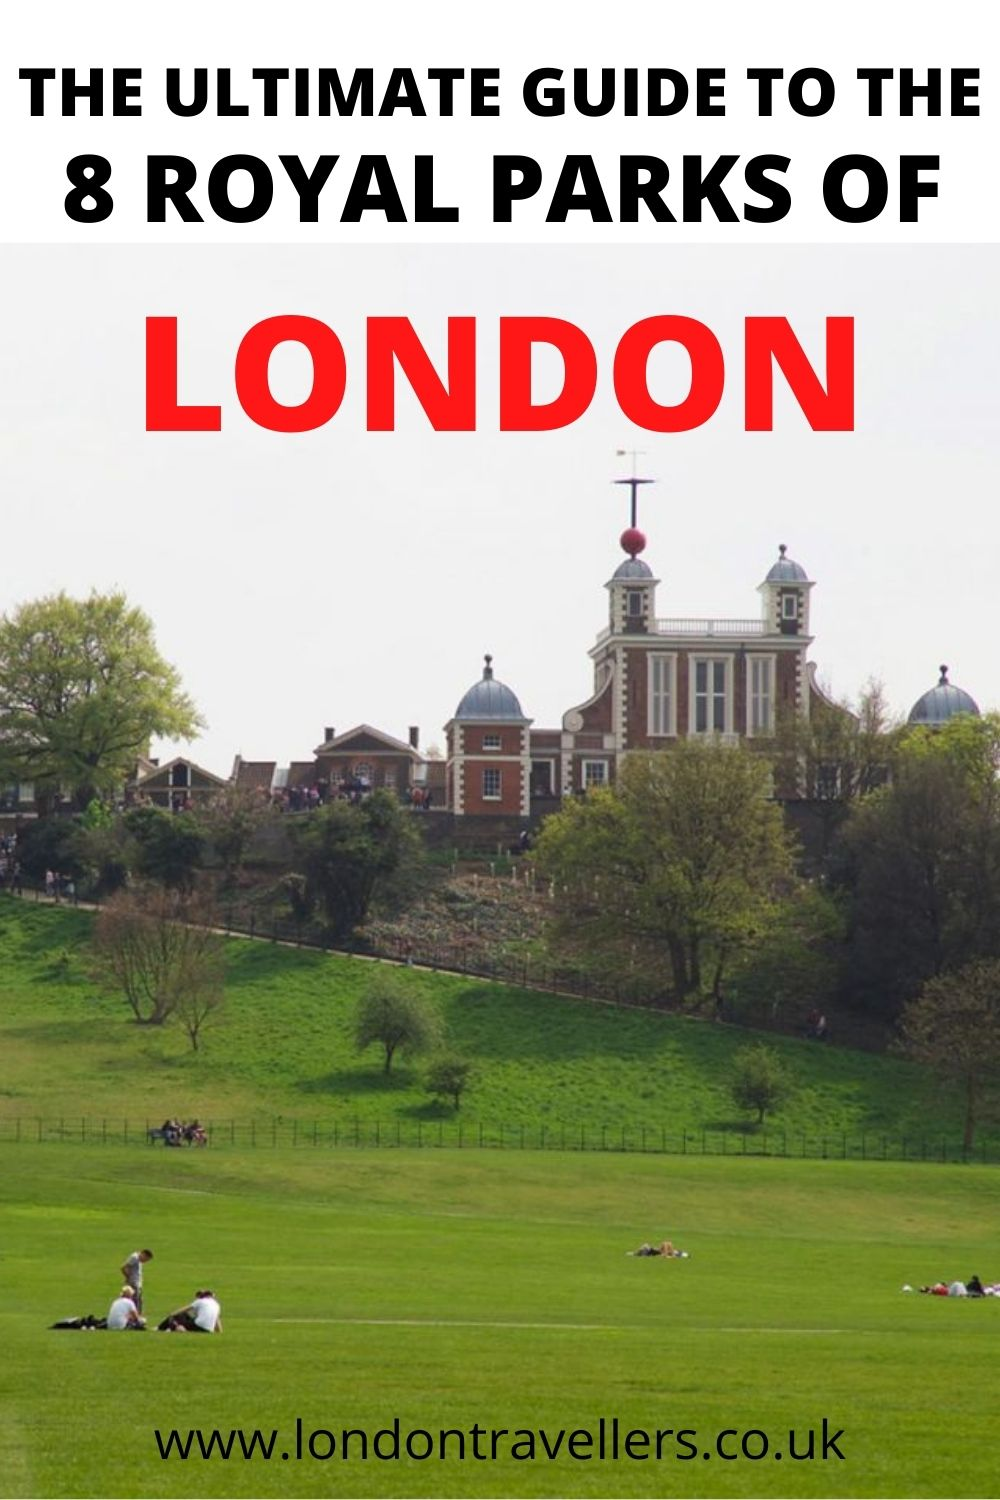 The 8 Royal Parks of London